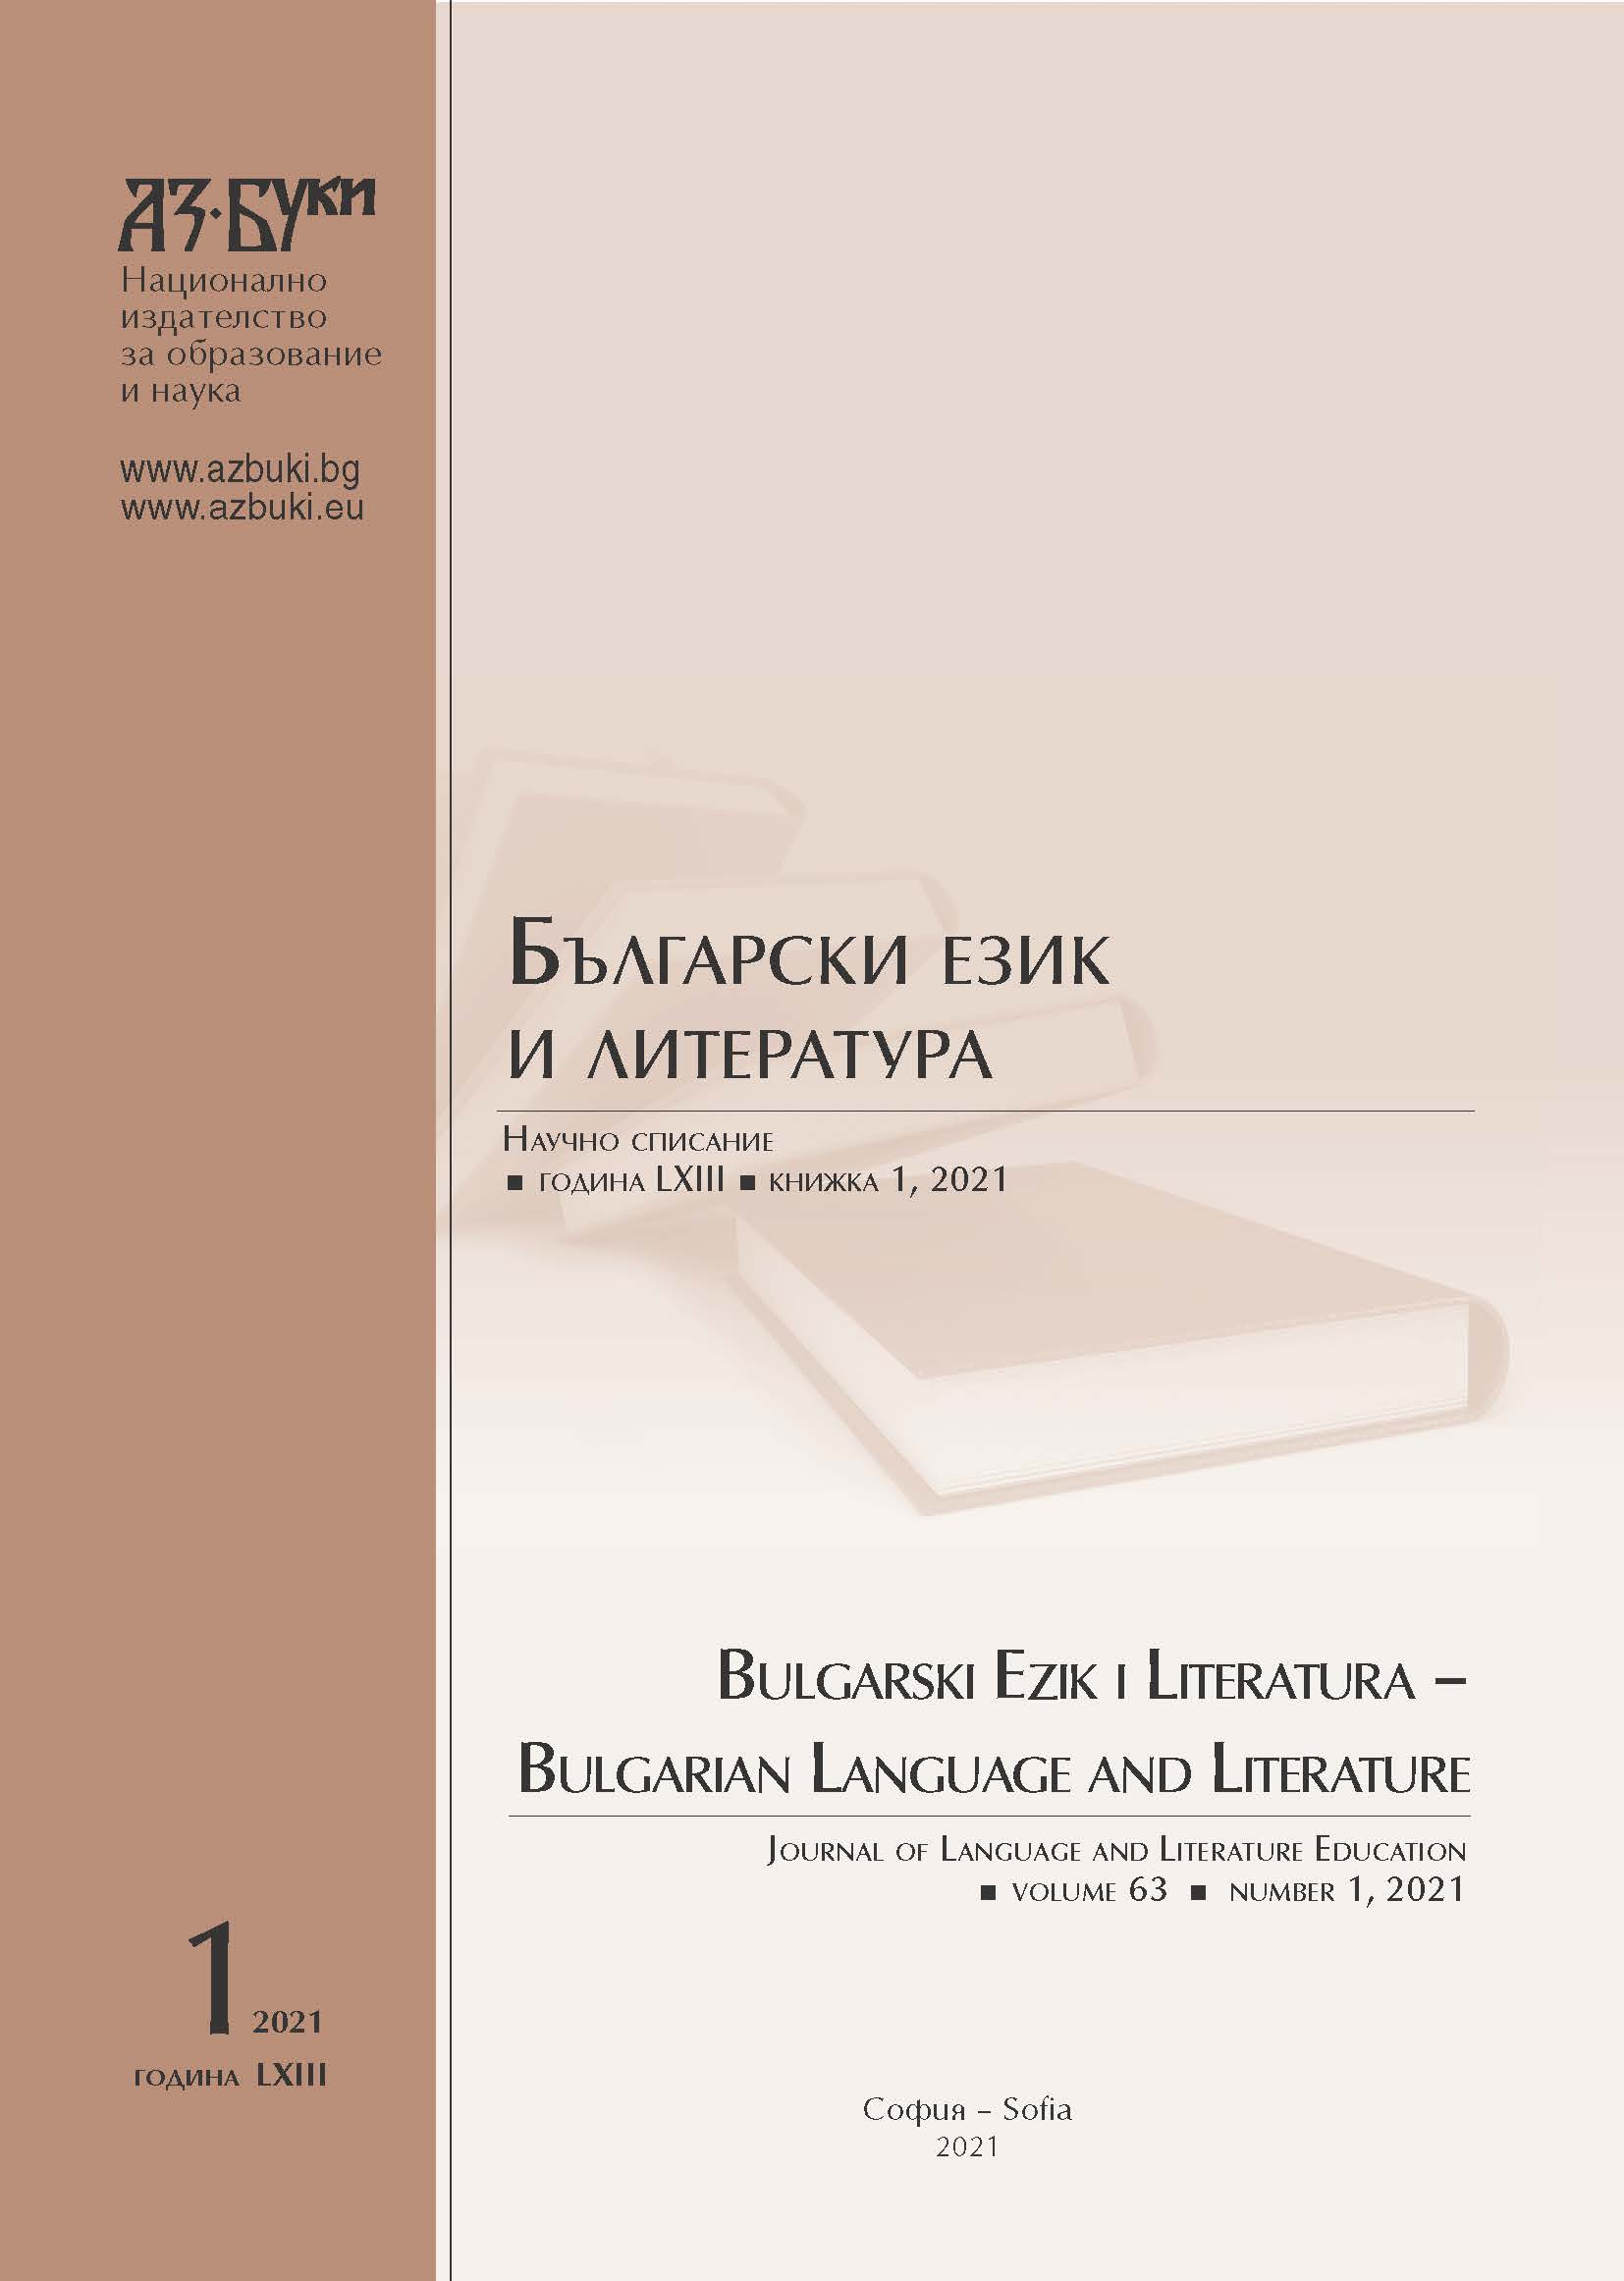 Bulgarian Language and Literature Cover Image